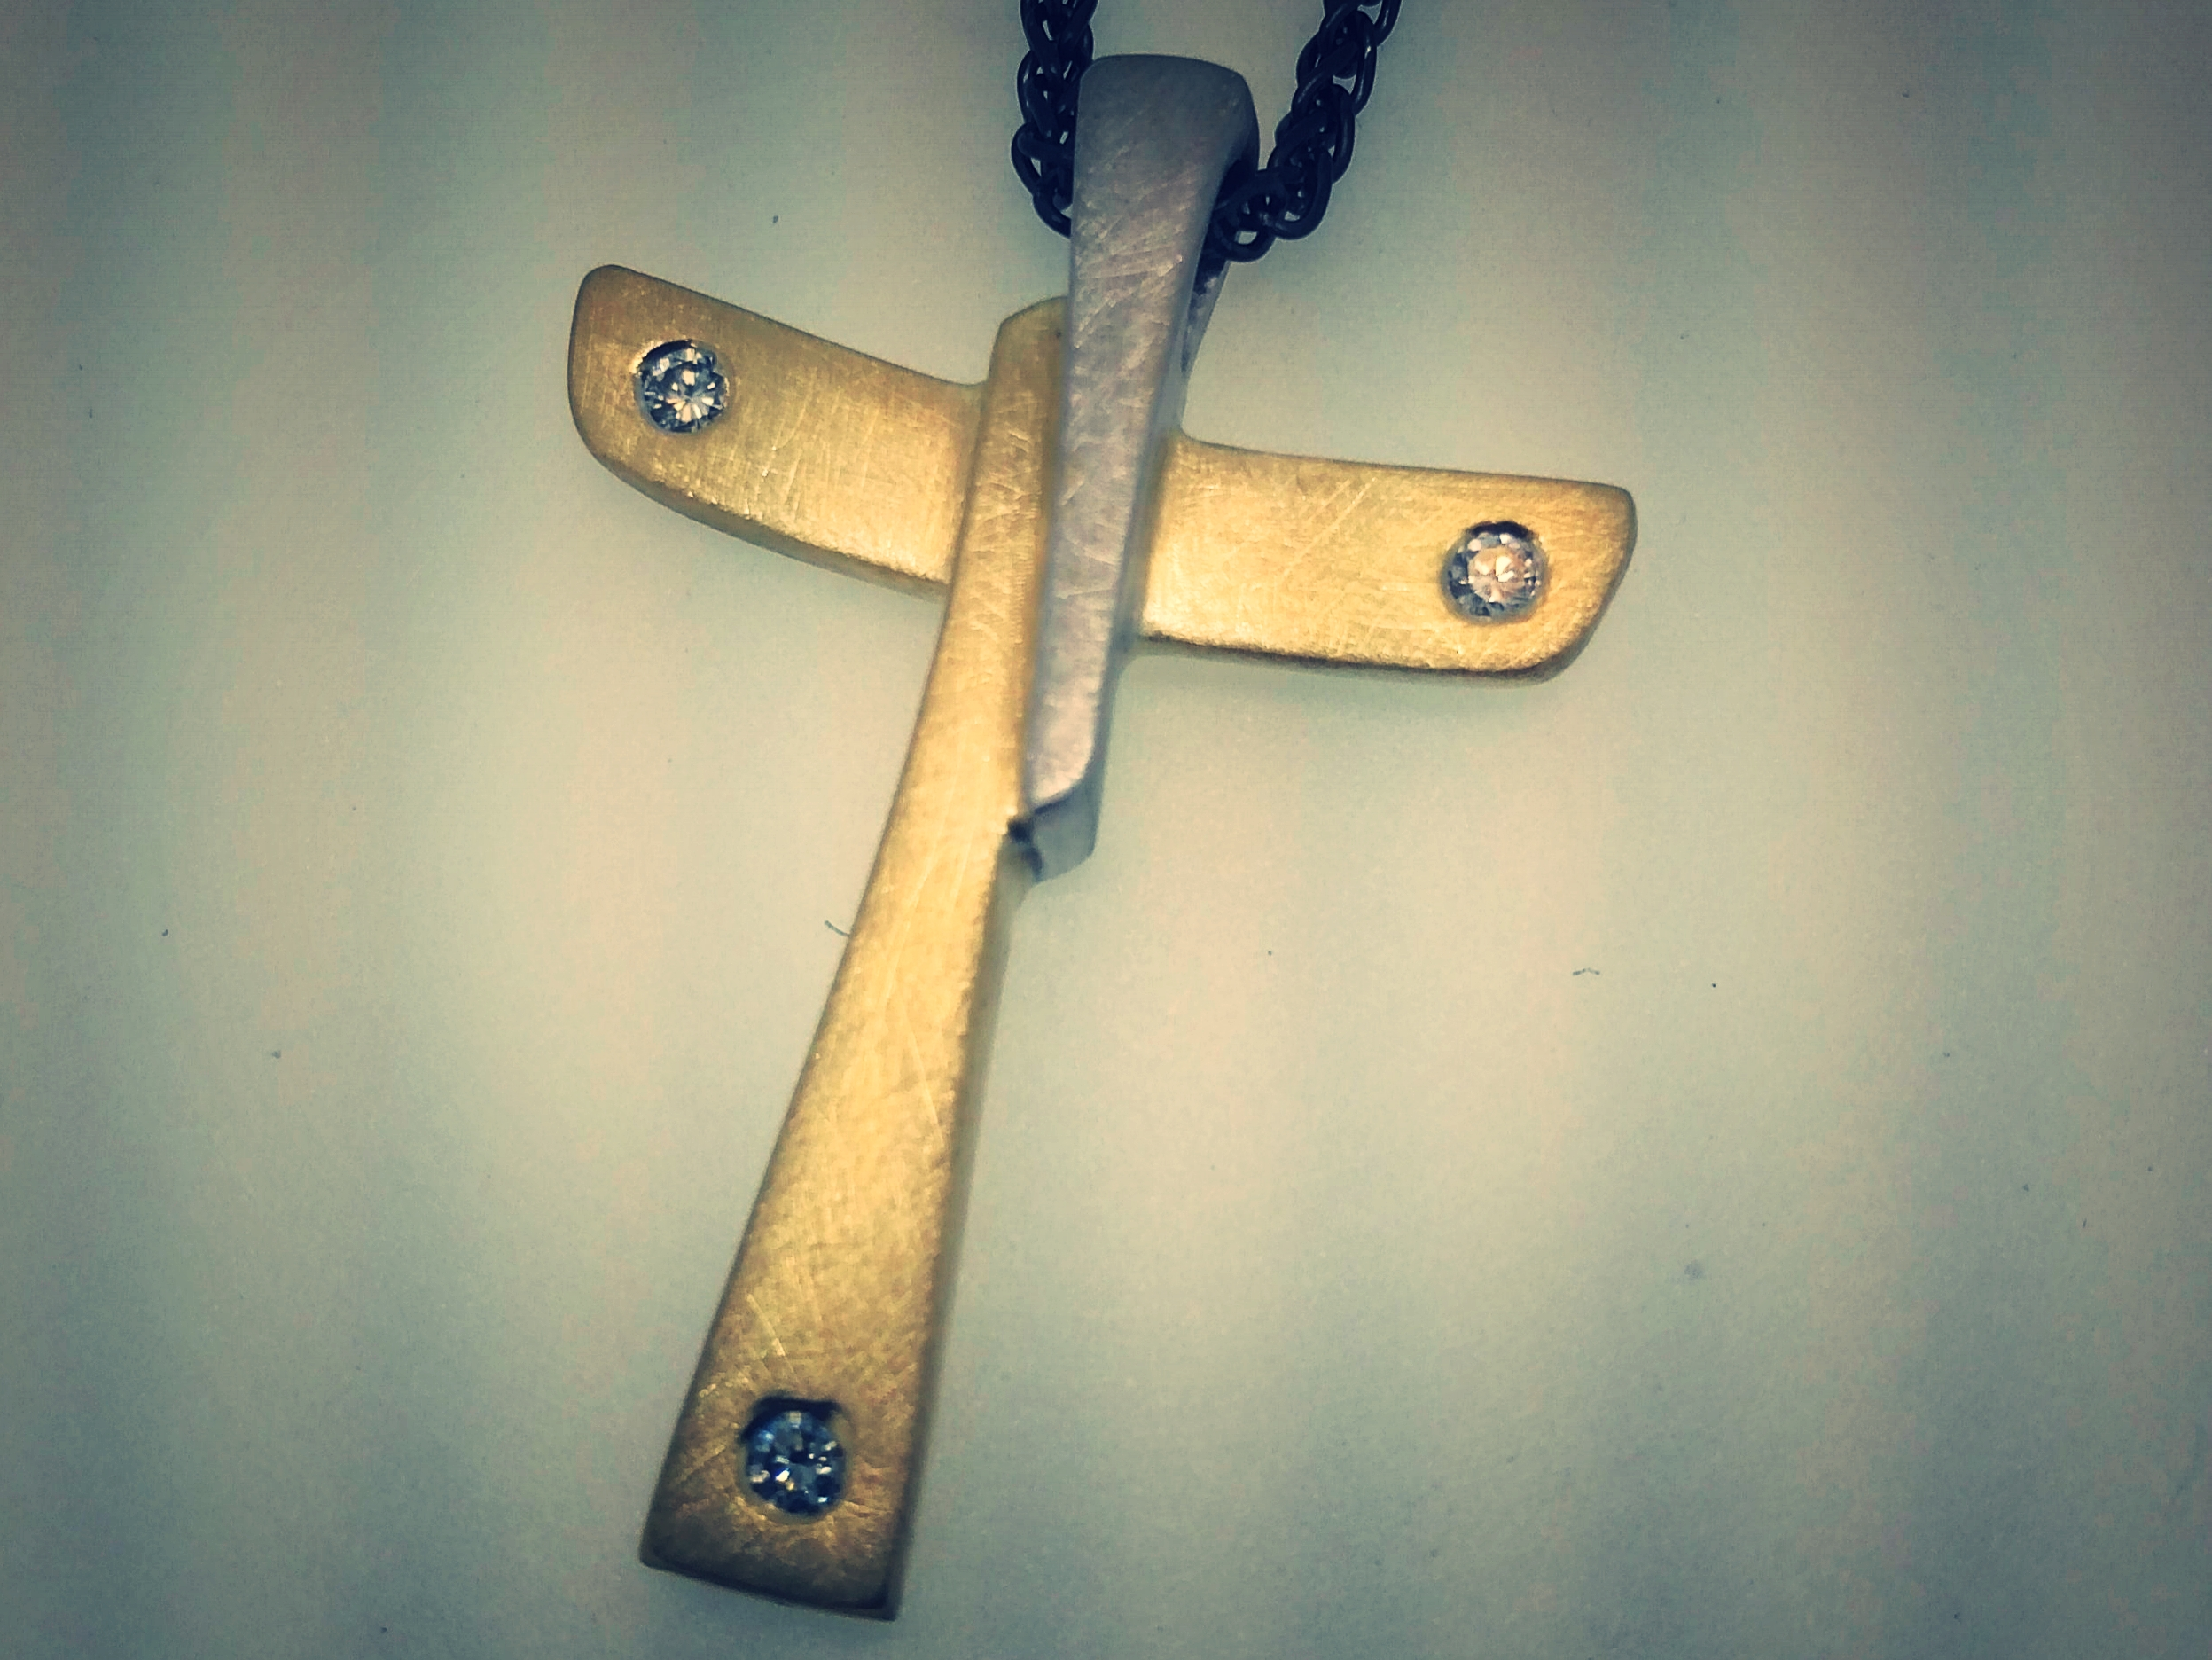 Transformed - I never thought I'd wear any jewelry again. However, what Grace offered to make for me...